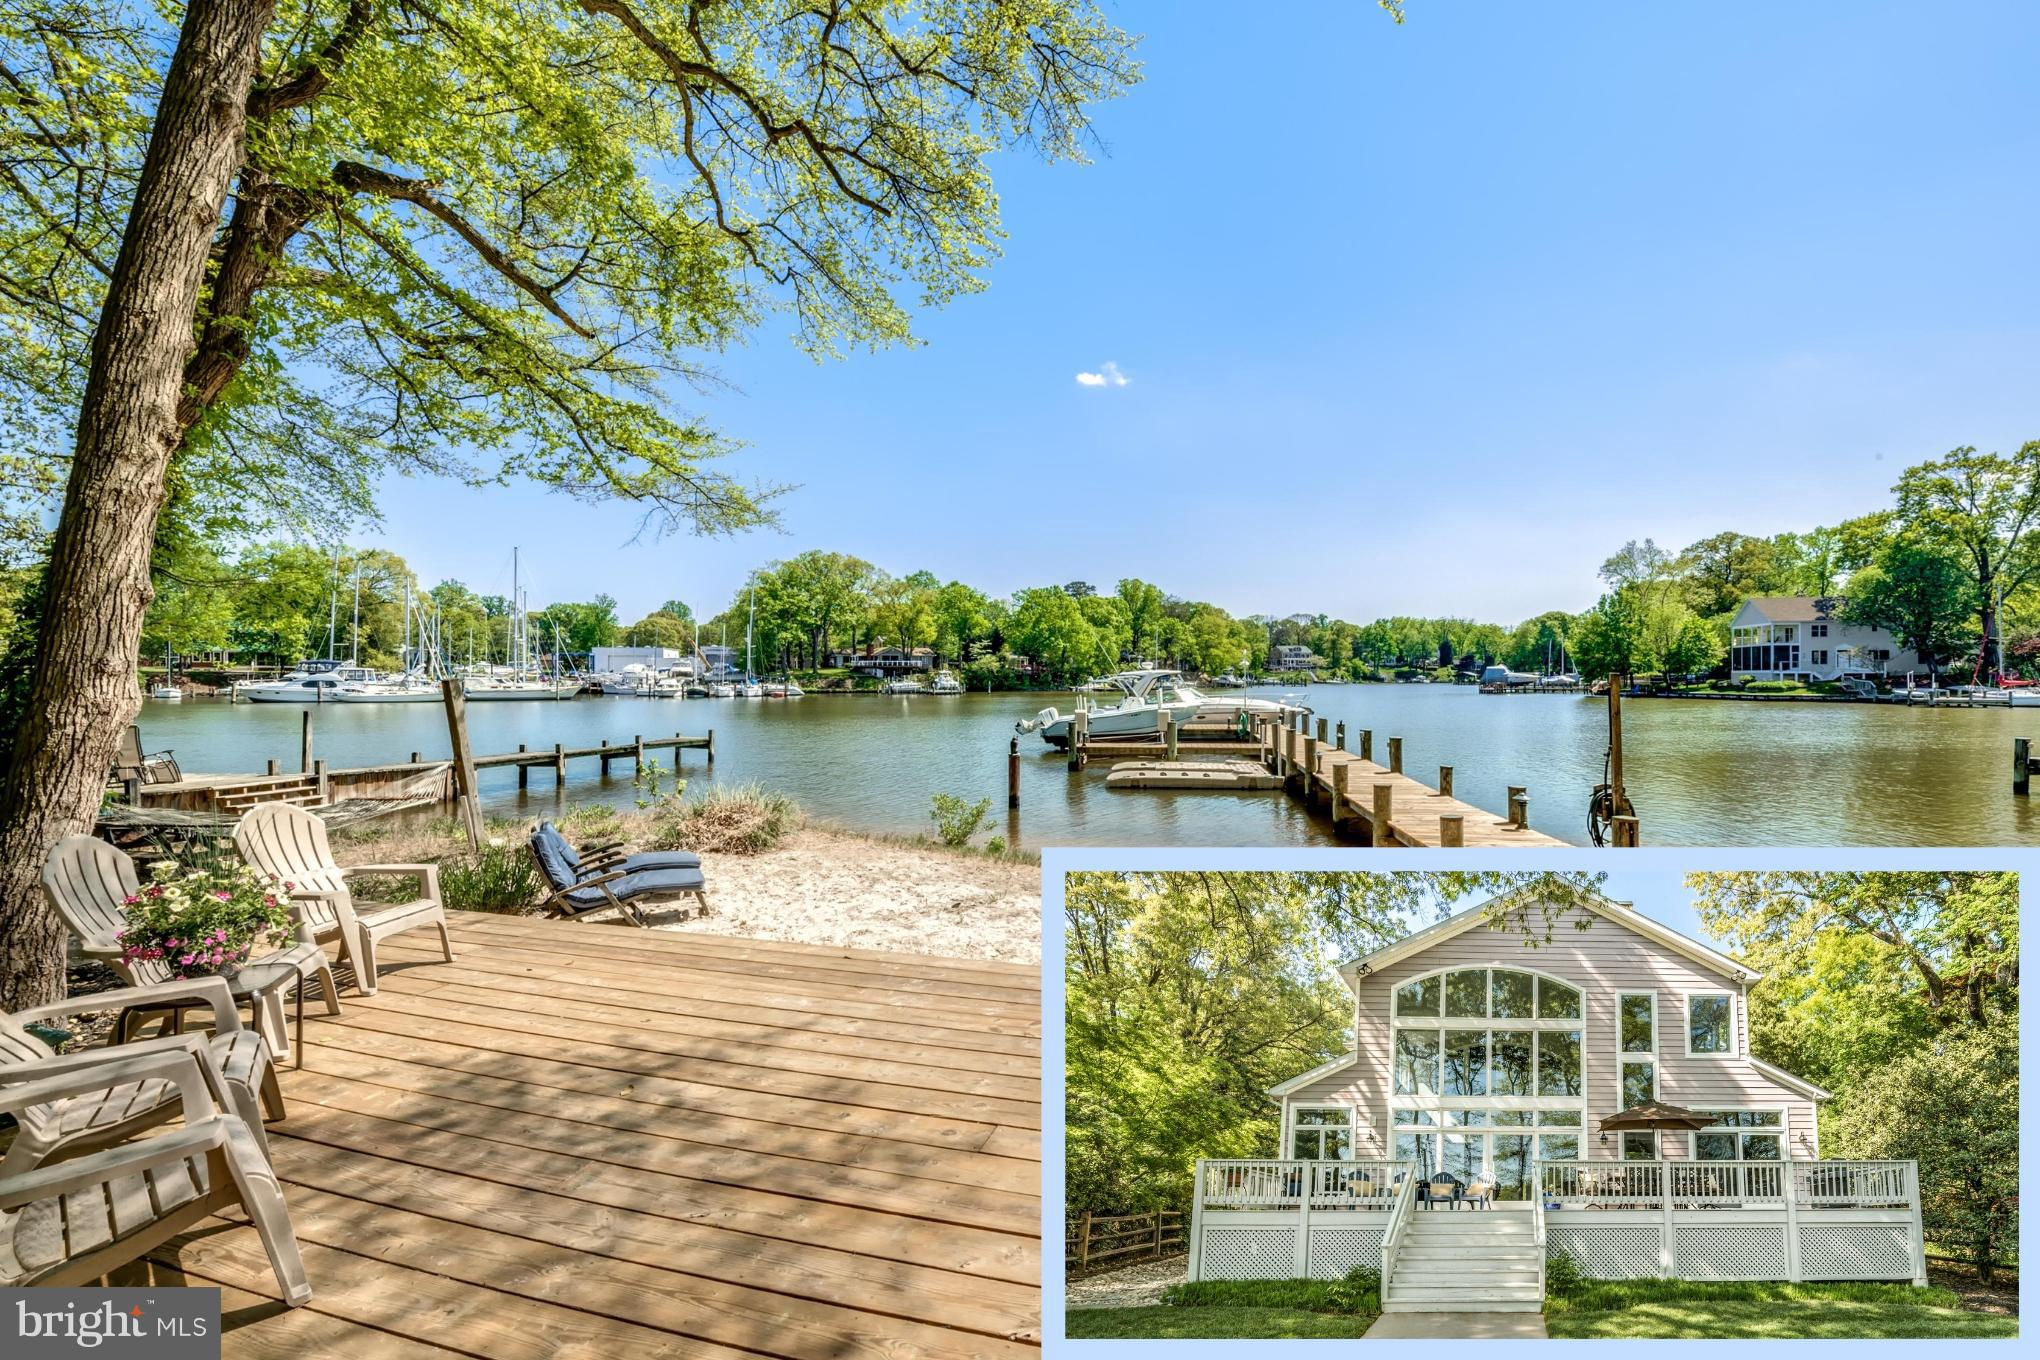 Stunning waterfront home featuring tranquil views and new deep water pier! Breathtaking, open main level made for entertaining features sun-drenched great room and stone fireplace. Two waterside decks & beach for gracious gatherings. Enjoy a casually elegant lifestyle here, from the waterview master suite to the fully finished basement with an HD theater room. Relax in private setting with easy access to Magothy River & Chesapeake Bay. Welcome home!